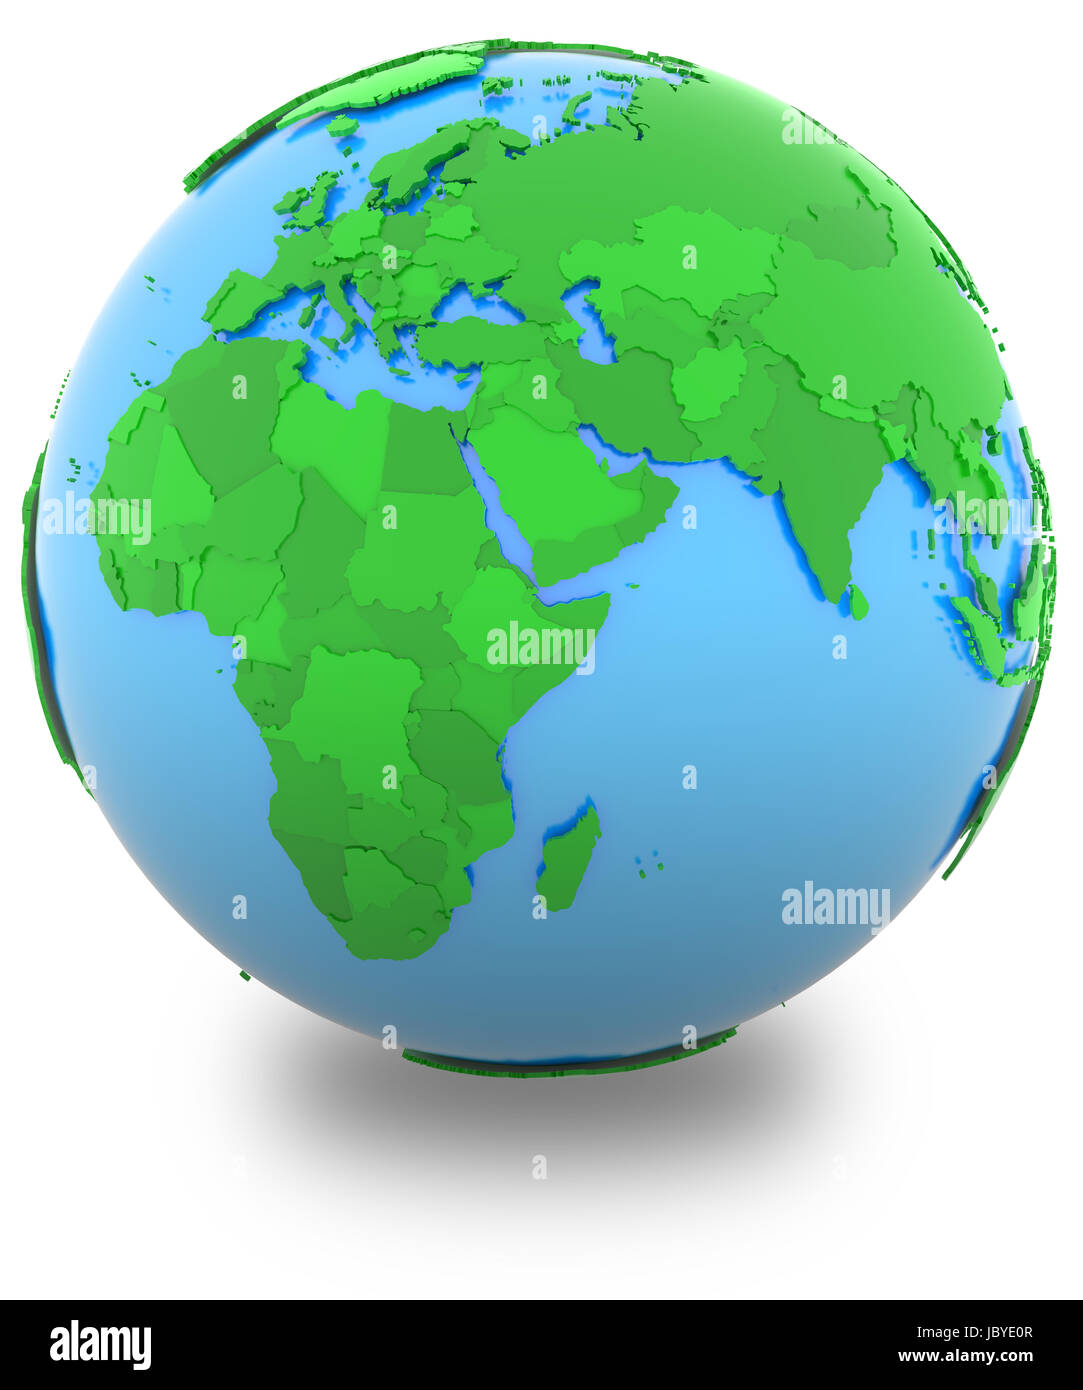 World Map Hemispheres Countries. Western hemisphere  political map of the world with countries in different shades green isolated on white background